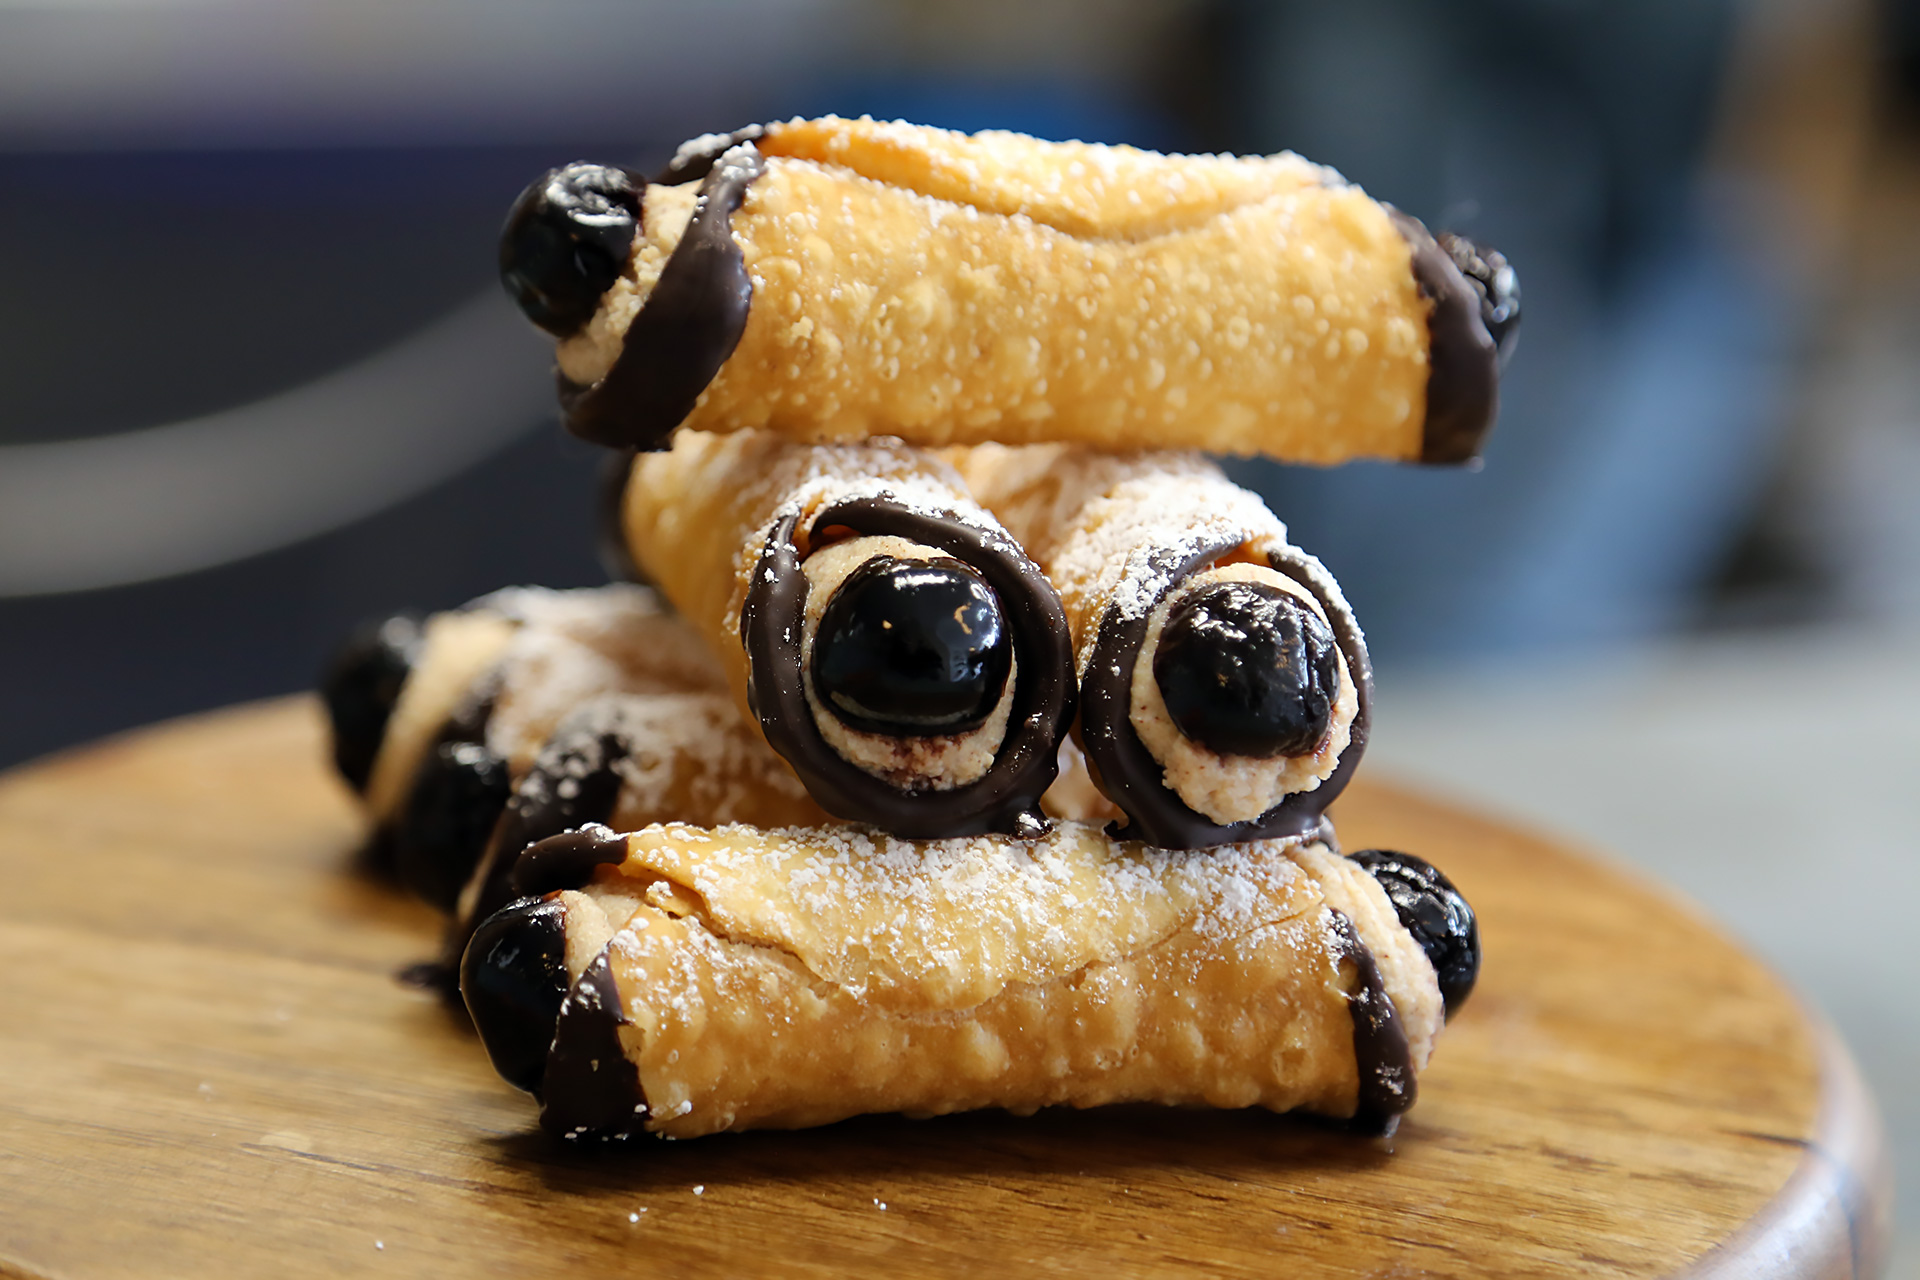 Chocolate-drizzled cannolis with Luxardo cherries dramatically peeking out of both ends.